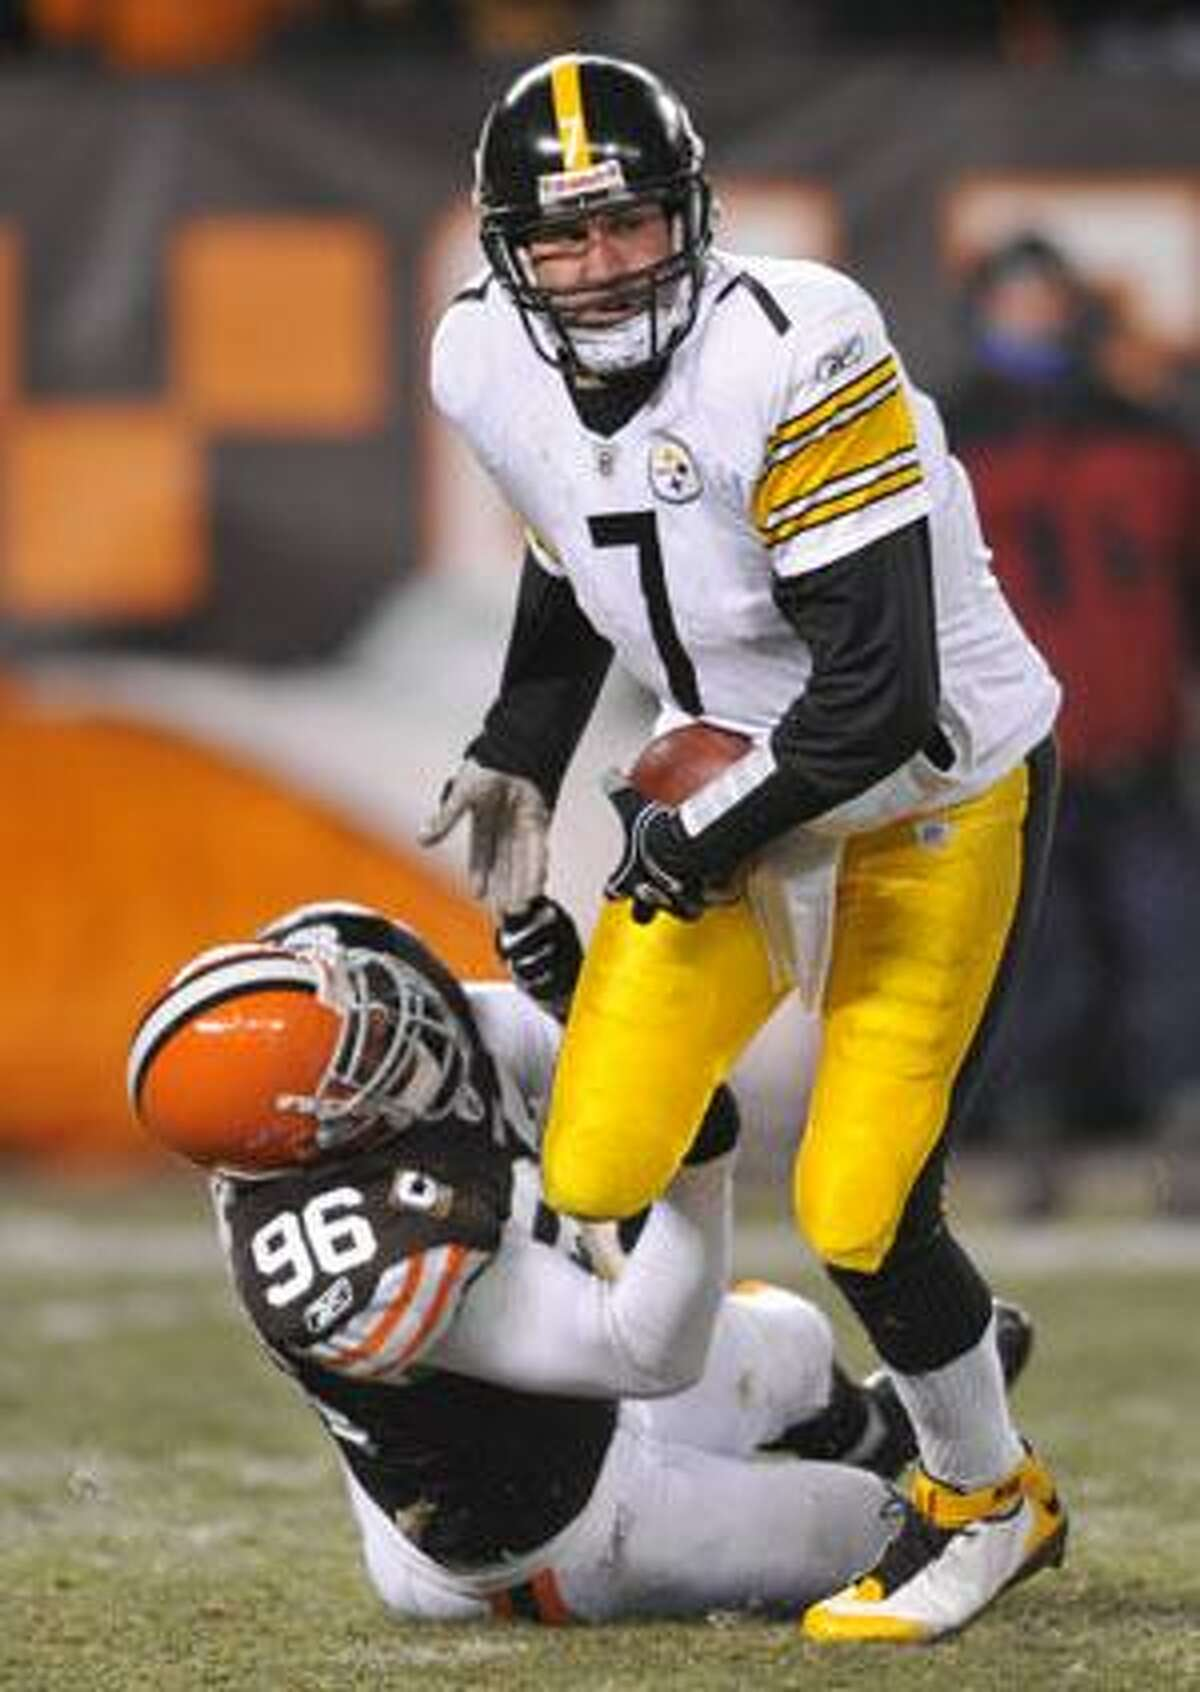 AP Pittsburgh Steelers quarterback Ben Roethlisberger (7) is sacked by Cleveland Browns linebacker David Bowens (96) in the third quarter of Thursday night's game in Cleveland. Roethlisberger was sacked eight times in the 13-6 loss to the Browns.